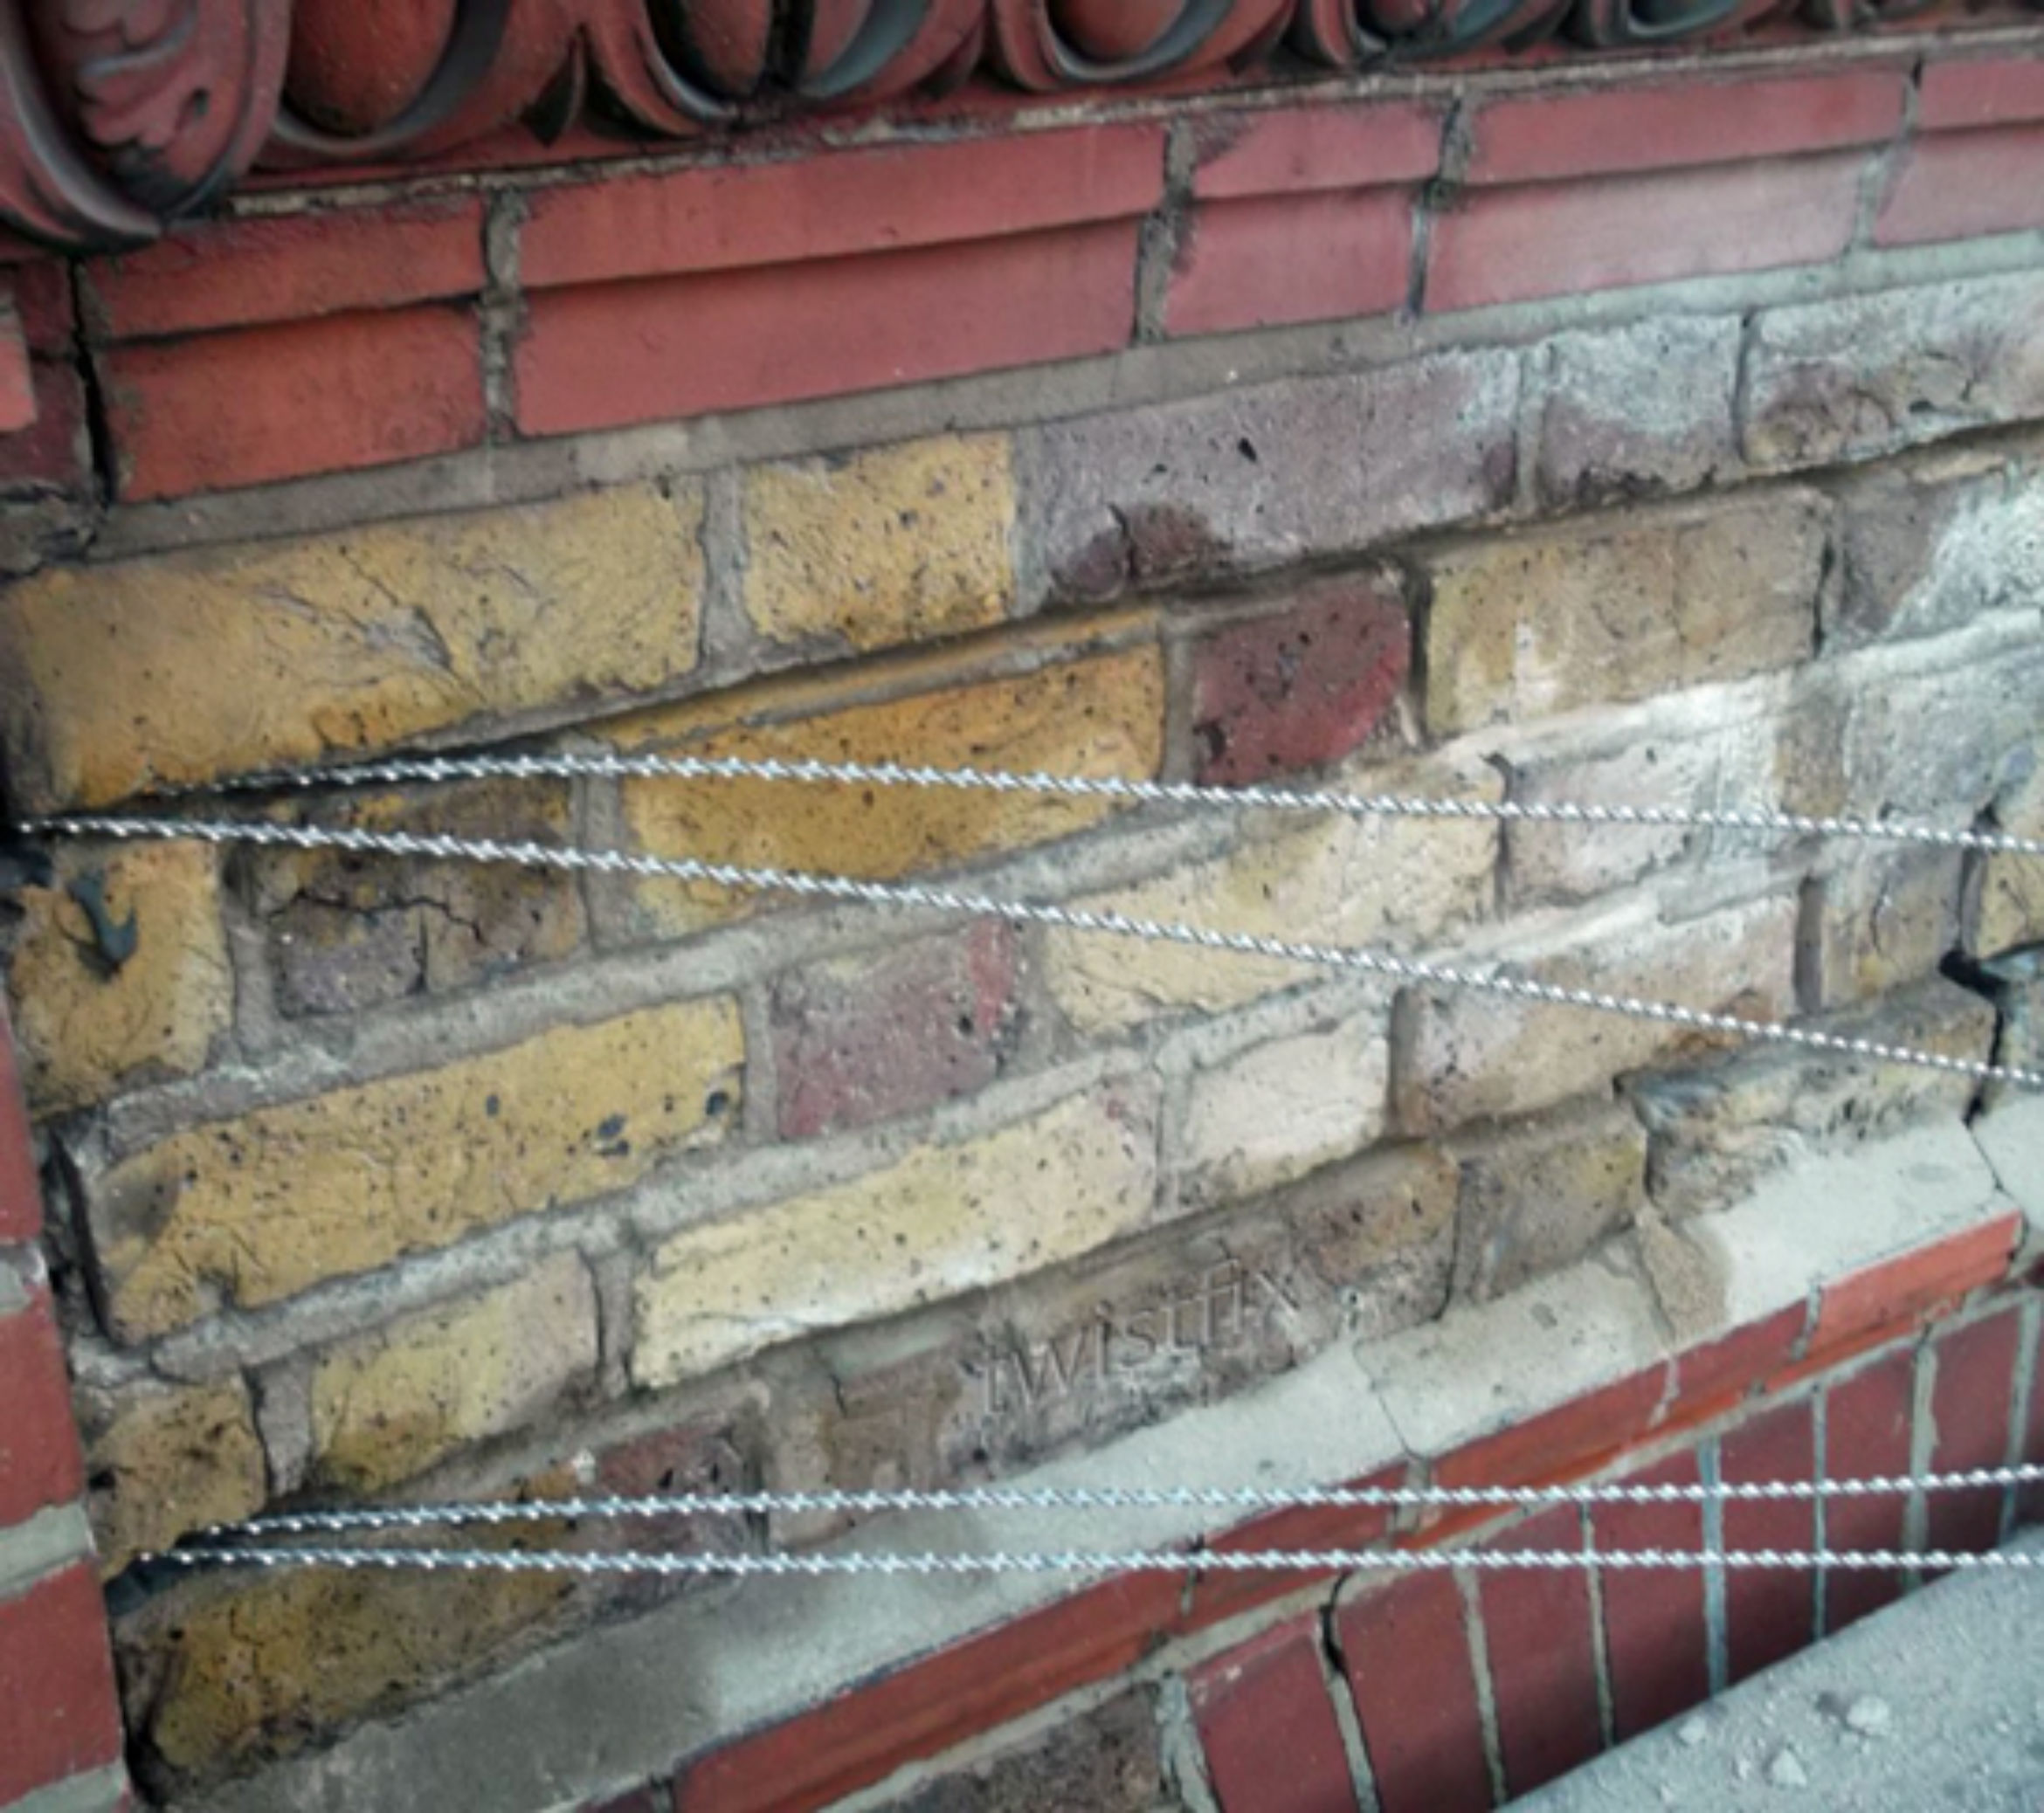 twistfix bars repair cracks